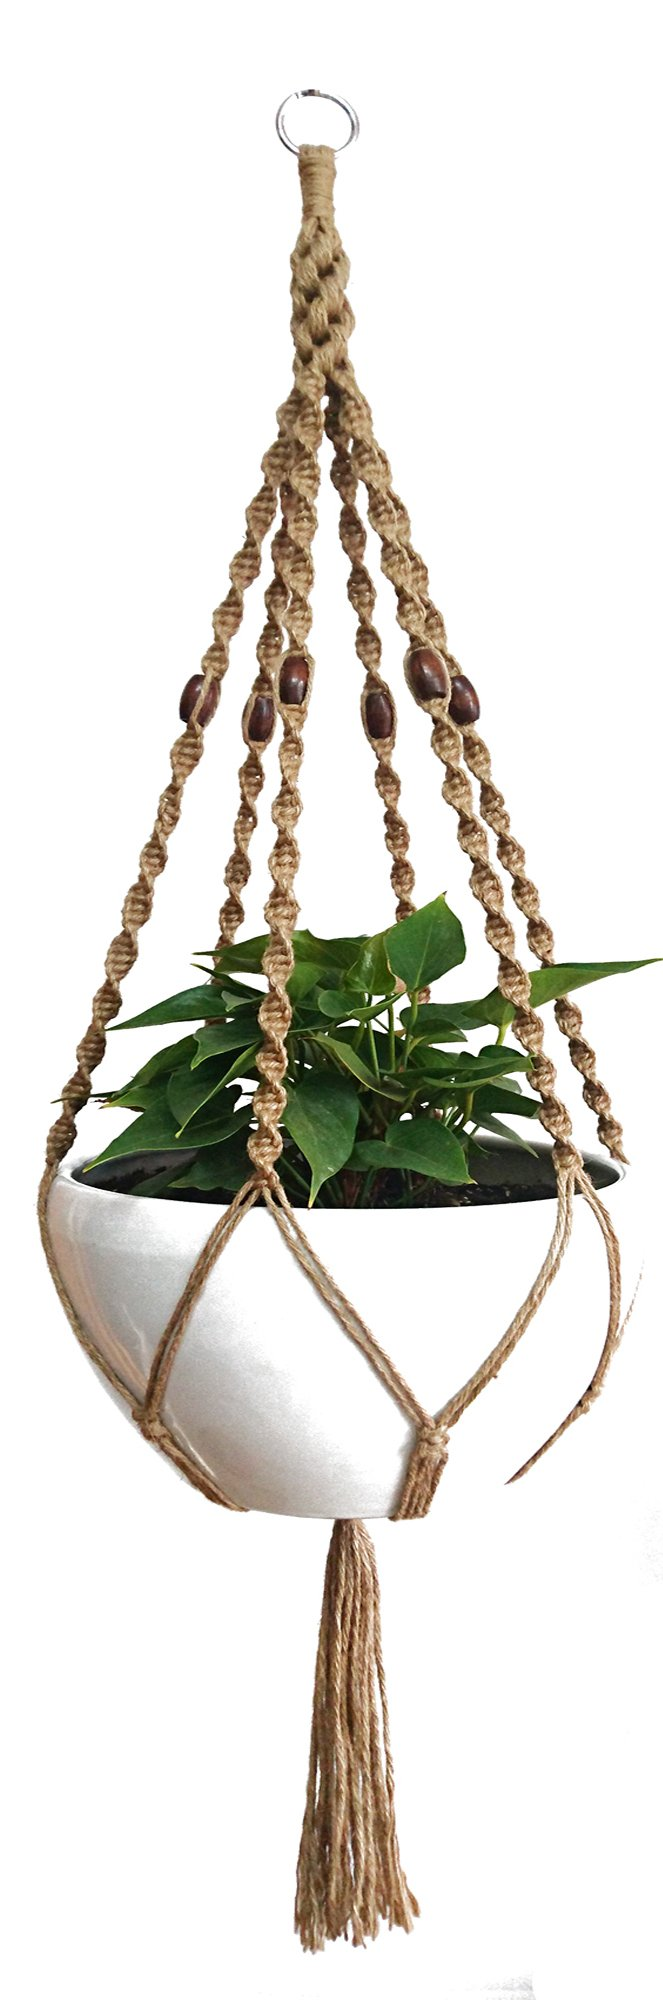 6 Legs Macrame Natural Jute and Cotton Plant Hanger & Holder and Metal Ring, 51-inches Length (Without the white pot and Plant) (Jute) (Brown-Jute)